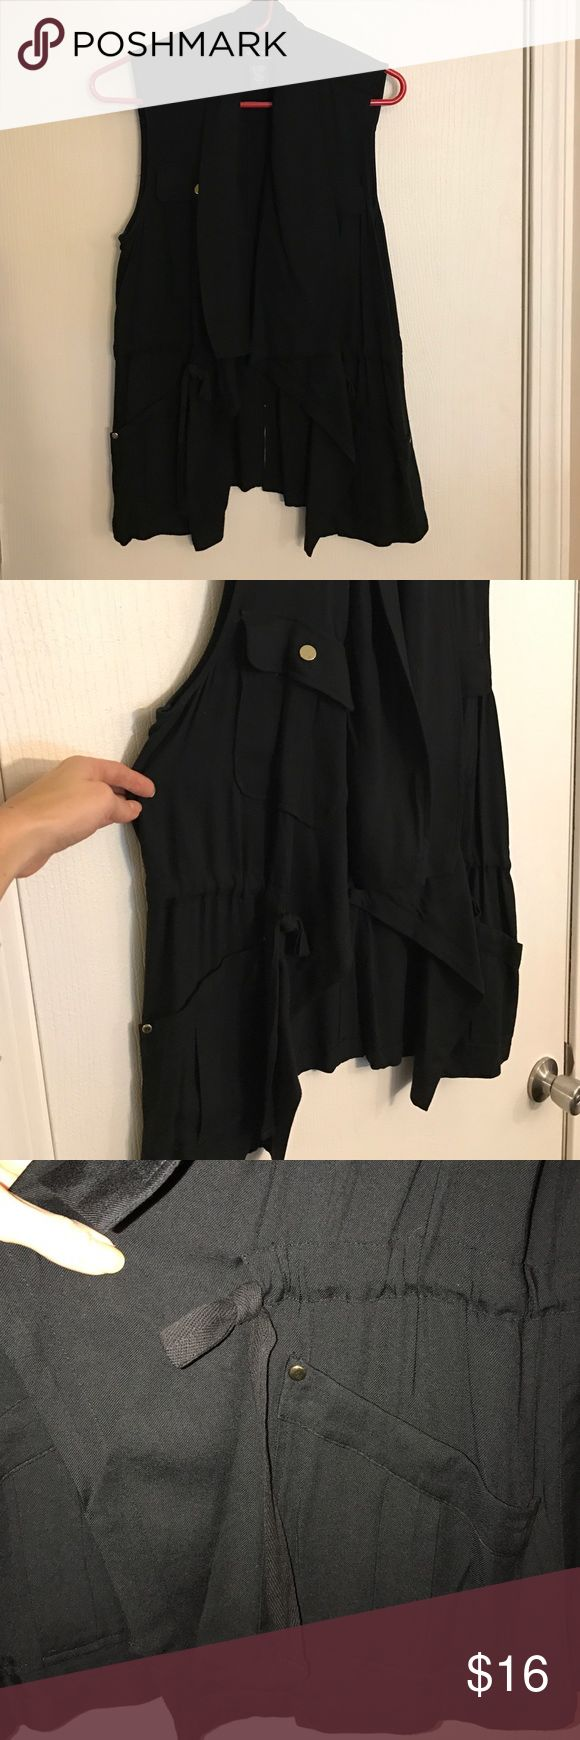 Black Vest Great black Vest/Cardigan in size small. Great detailing, pockets and drawstring waist. Tops